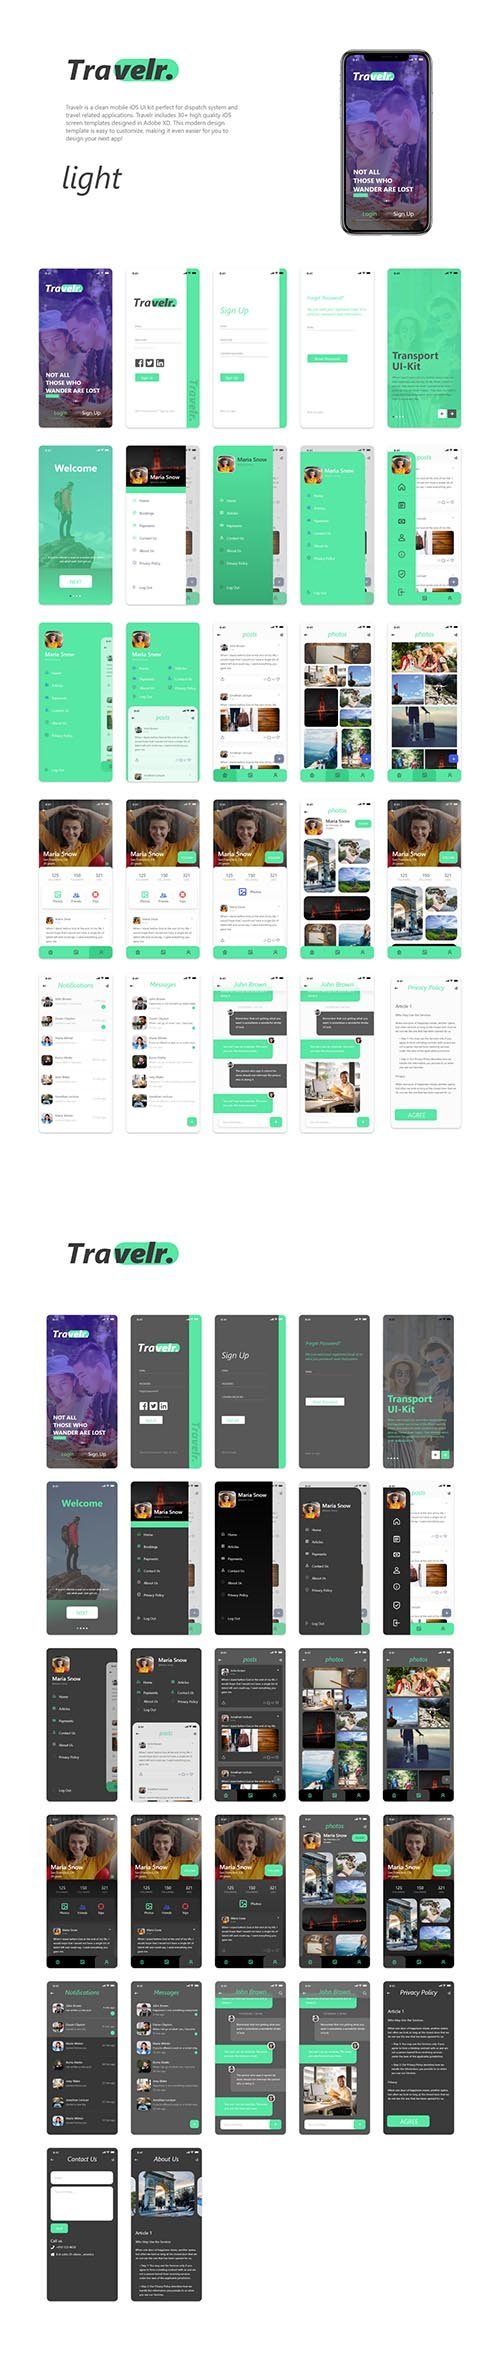 Travelr App UI Kit